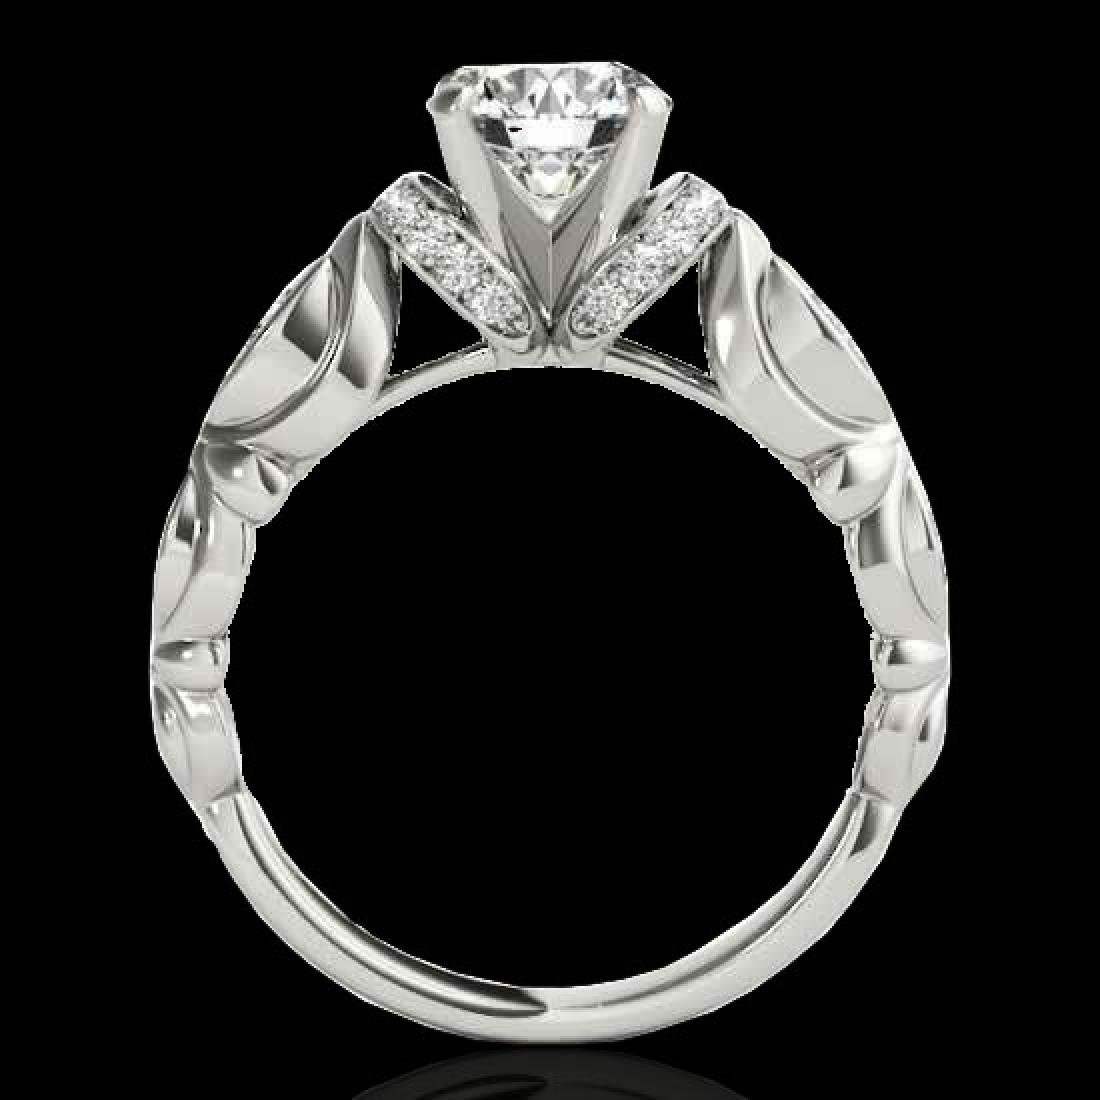 1.2 CTW H-SI/I Certified Diamond Solitaire Antique Ring - 2